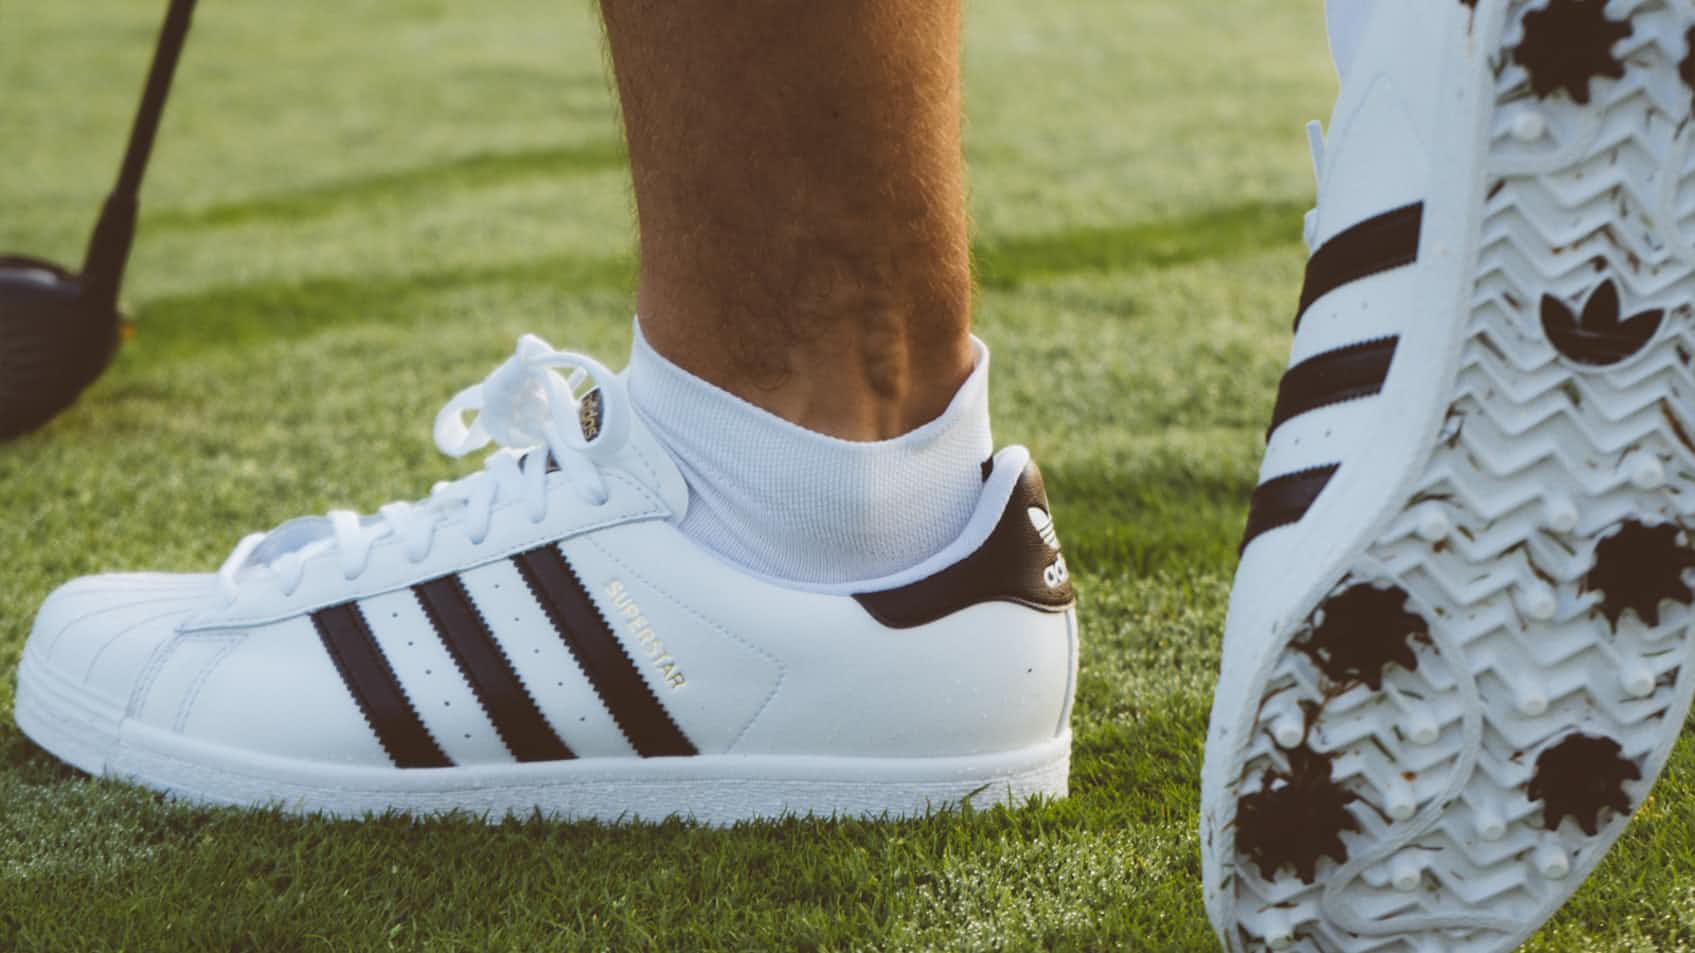 Cargado Seminario Estimar  adidas Superstar Golf Shoe | Where to Buy | TRENDYGOLF.COM